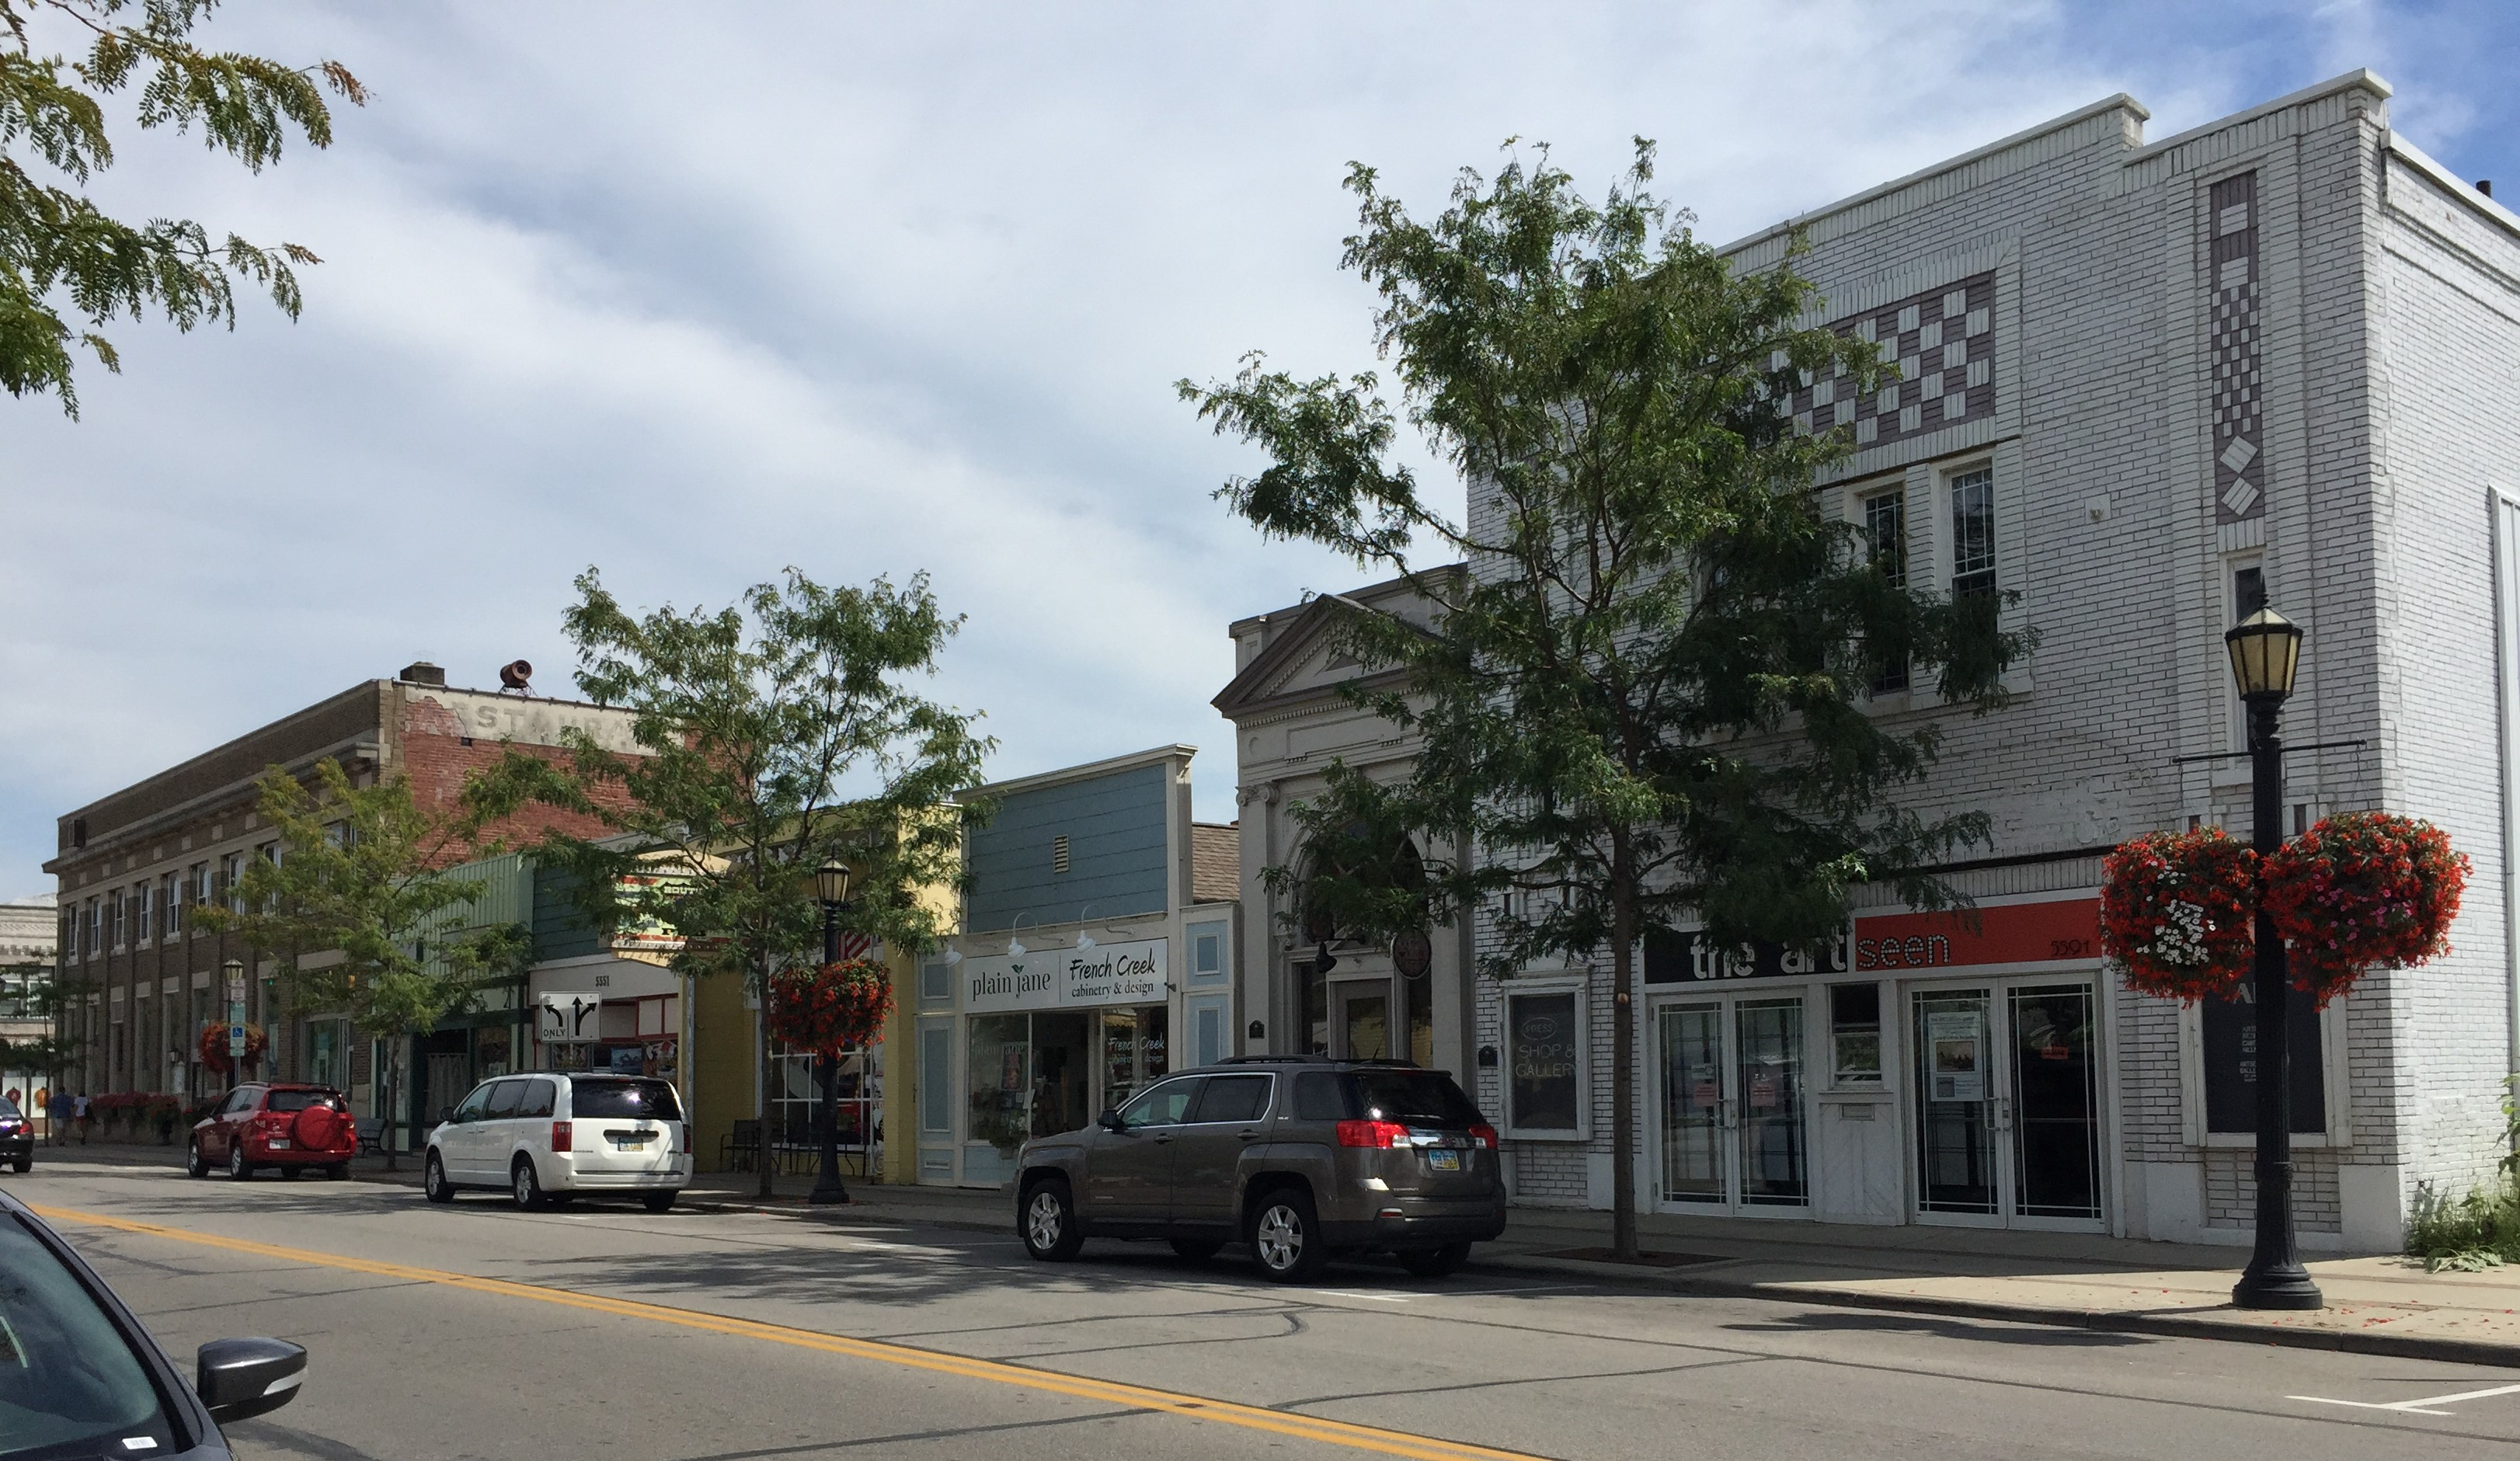 Liberty Avenue, Vermilion, Ohio (Photo: Sarah Sundin, August 2016)